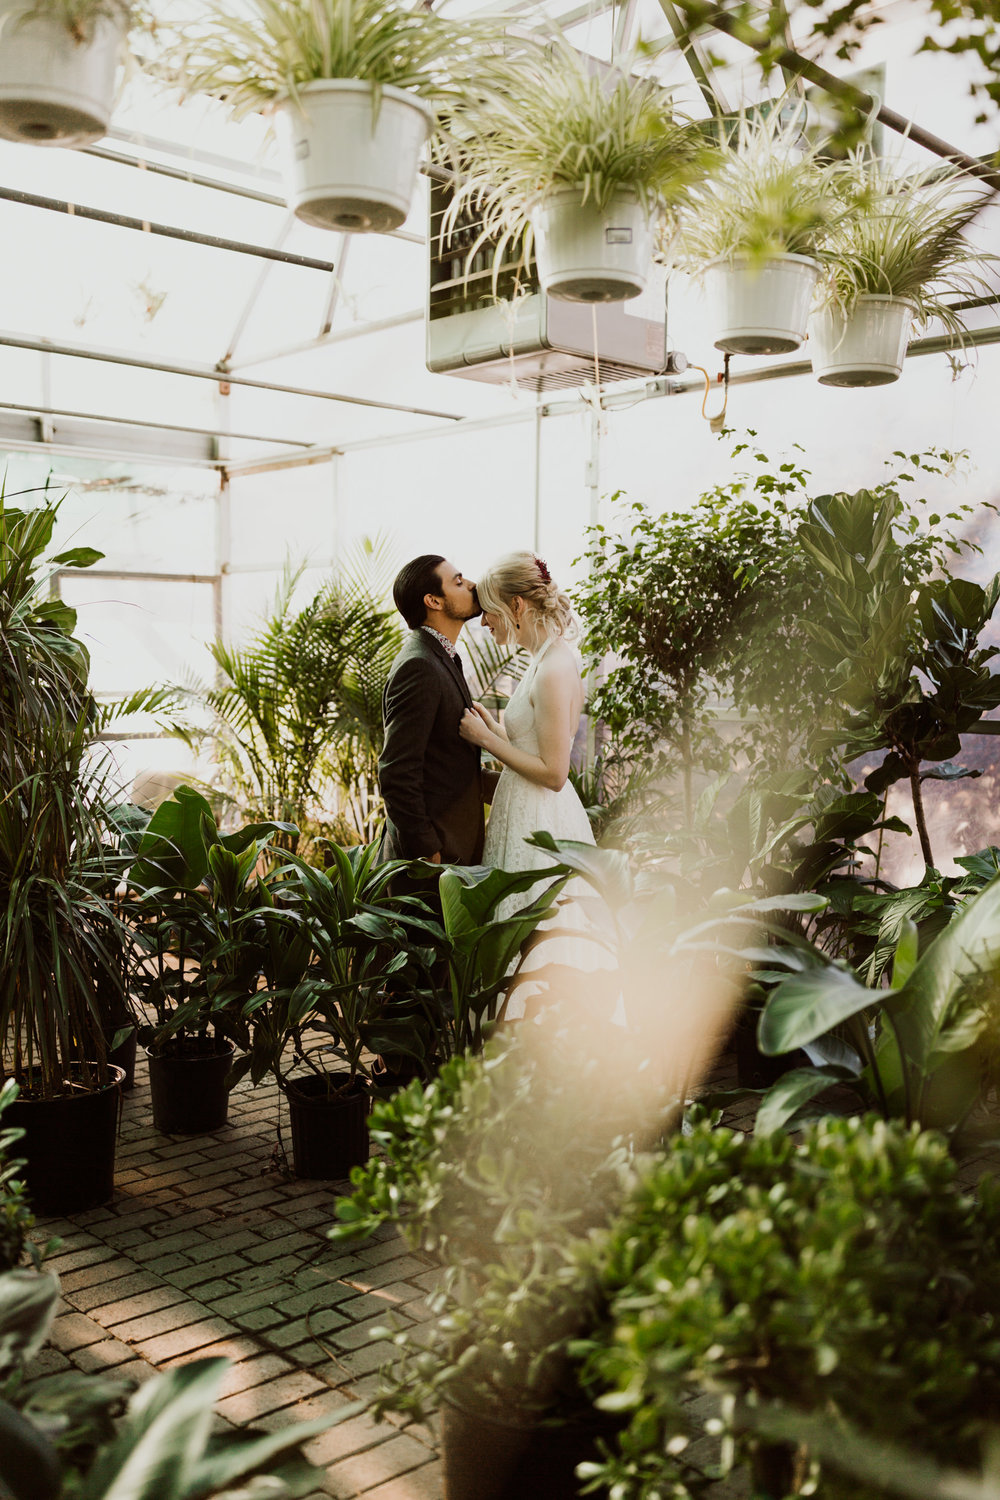 intimate-plant-shop-wedding-11.jpg